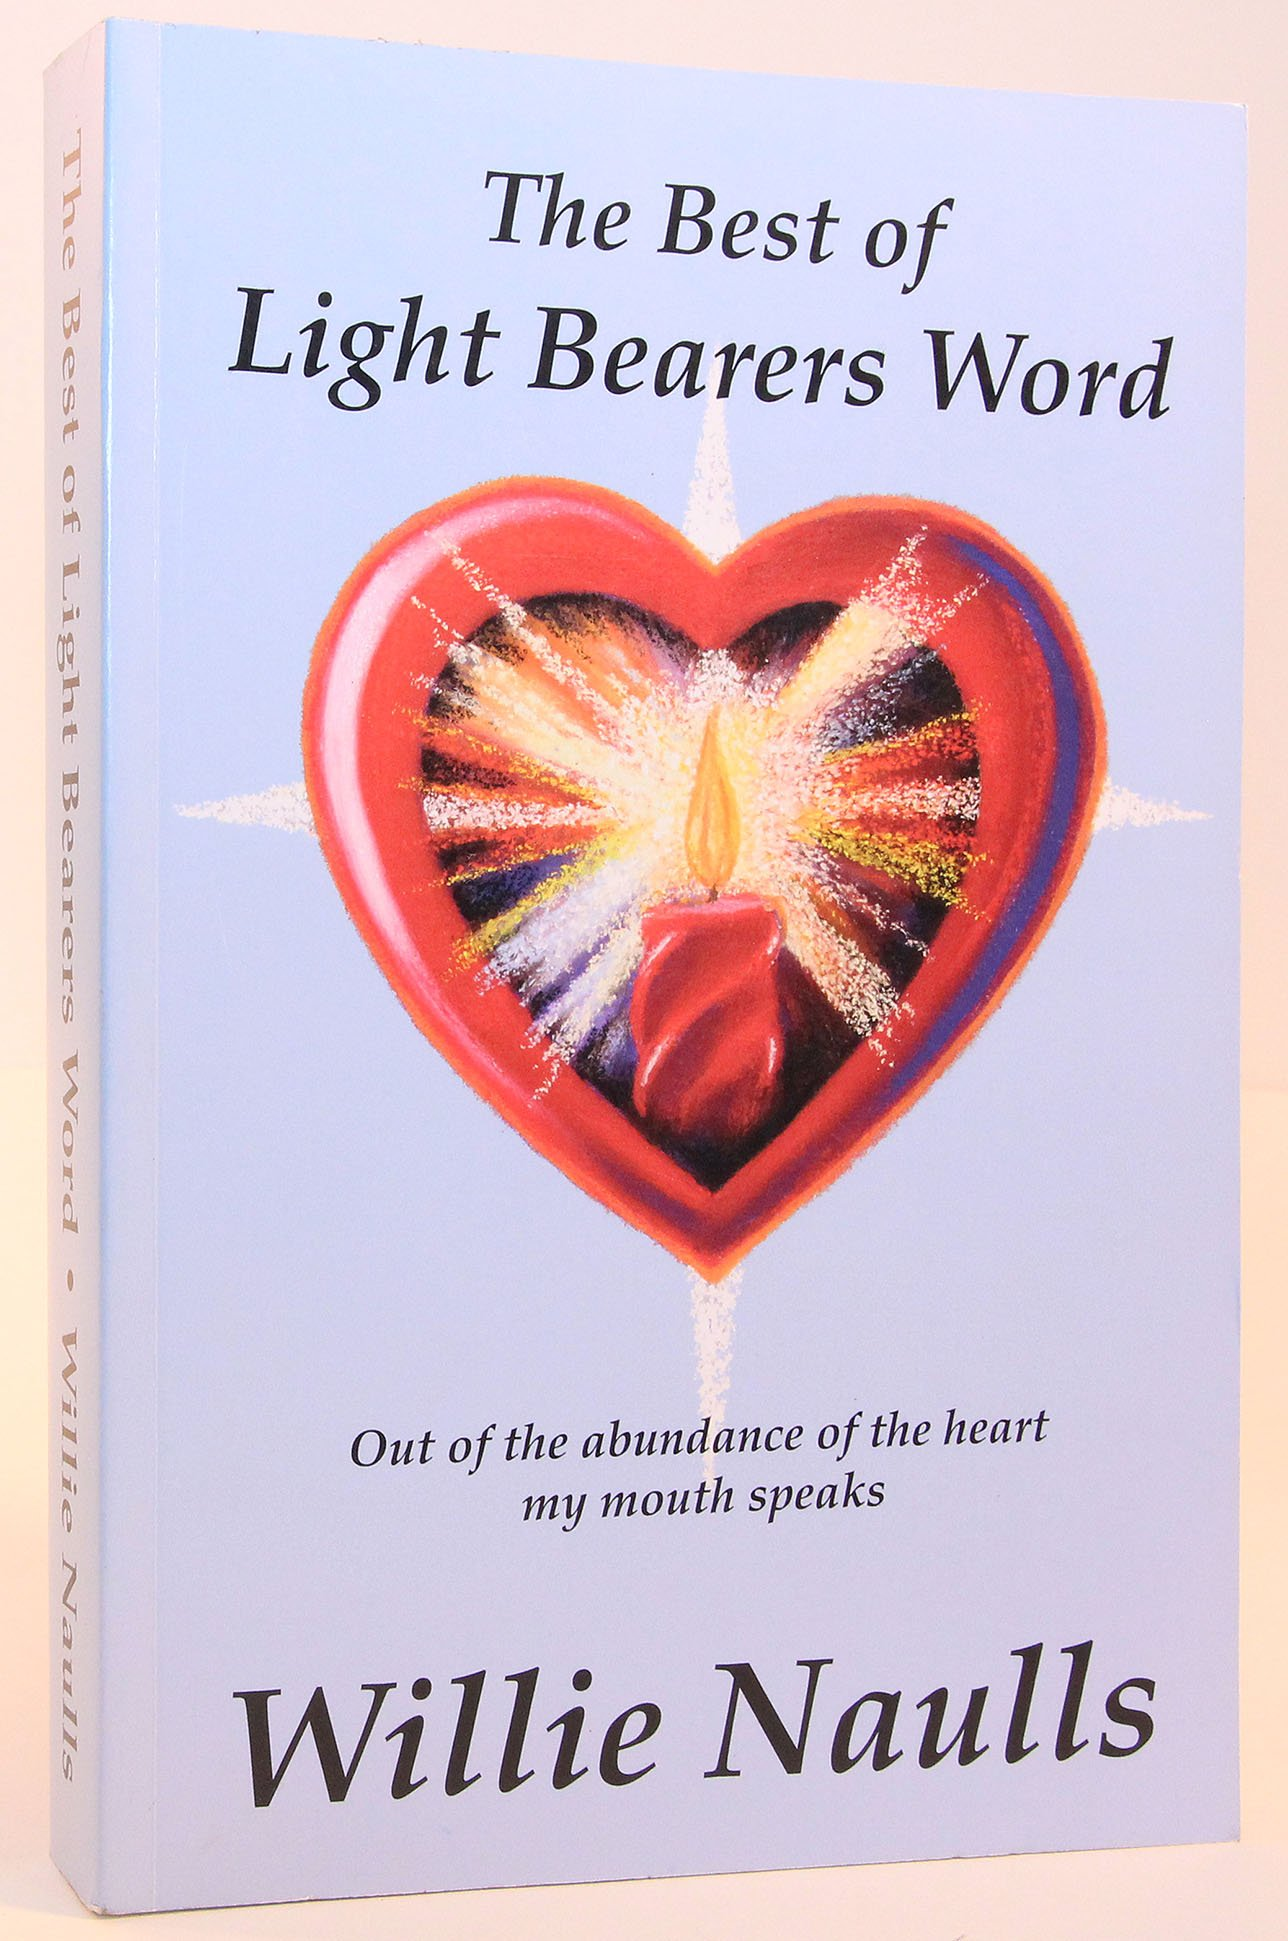 The Best of of Light Bearers Word Willie Naulls